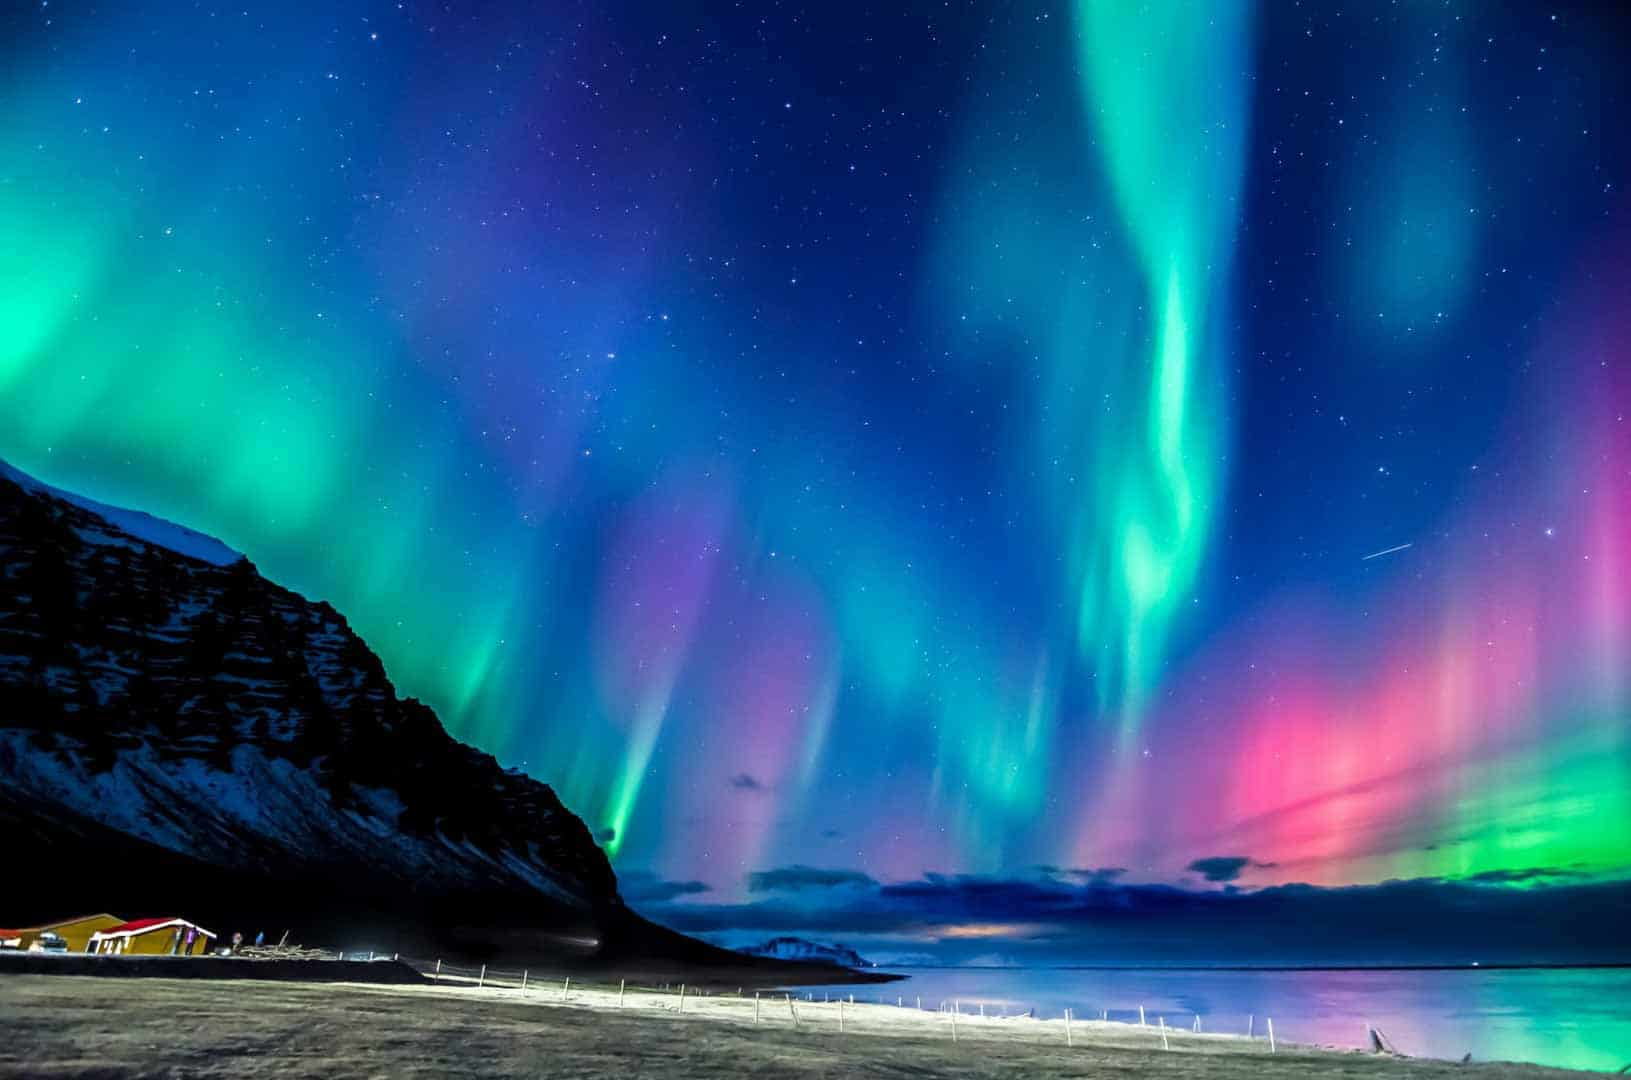 Colorful Northern Lights in the Icelandic Countryside